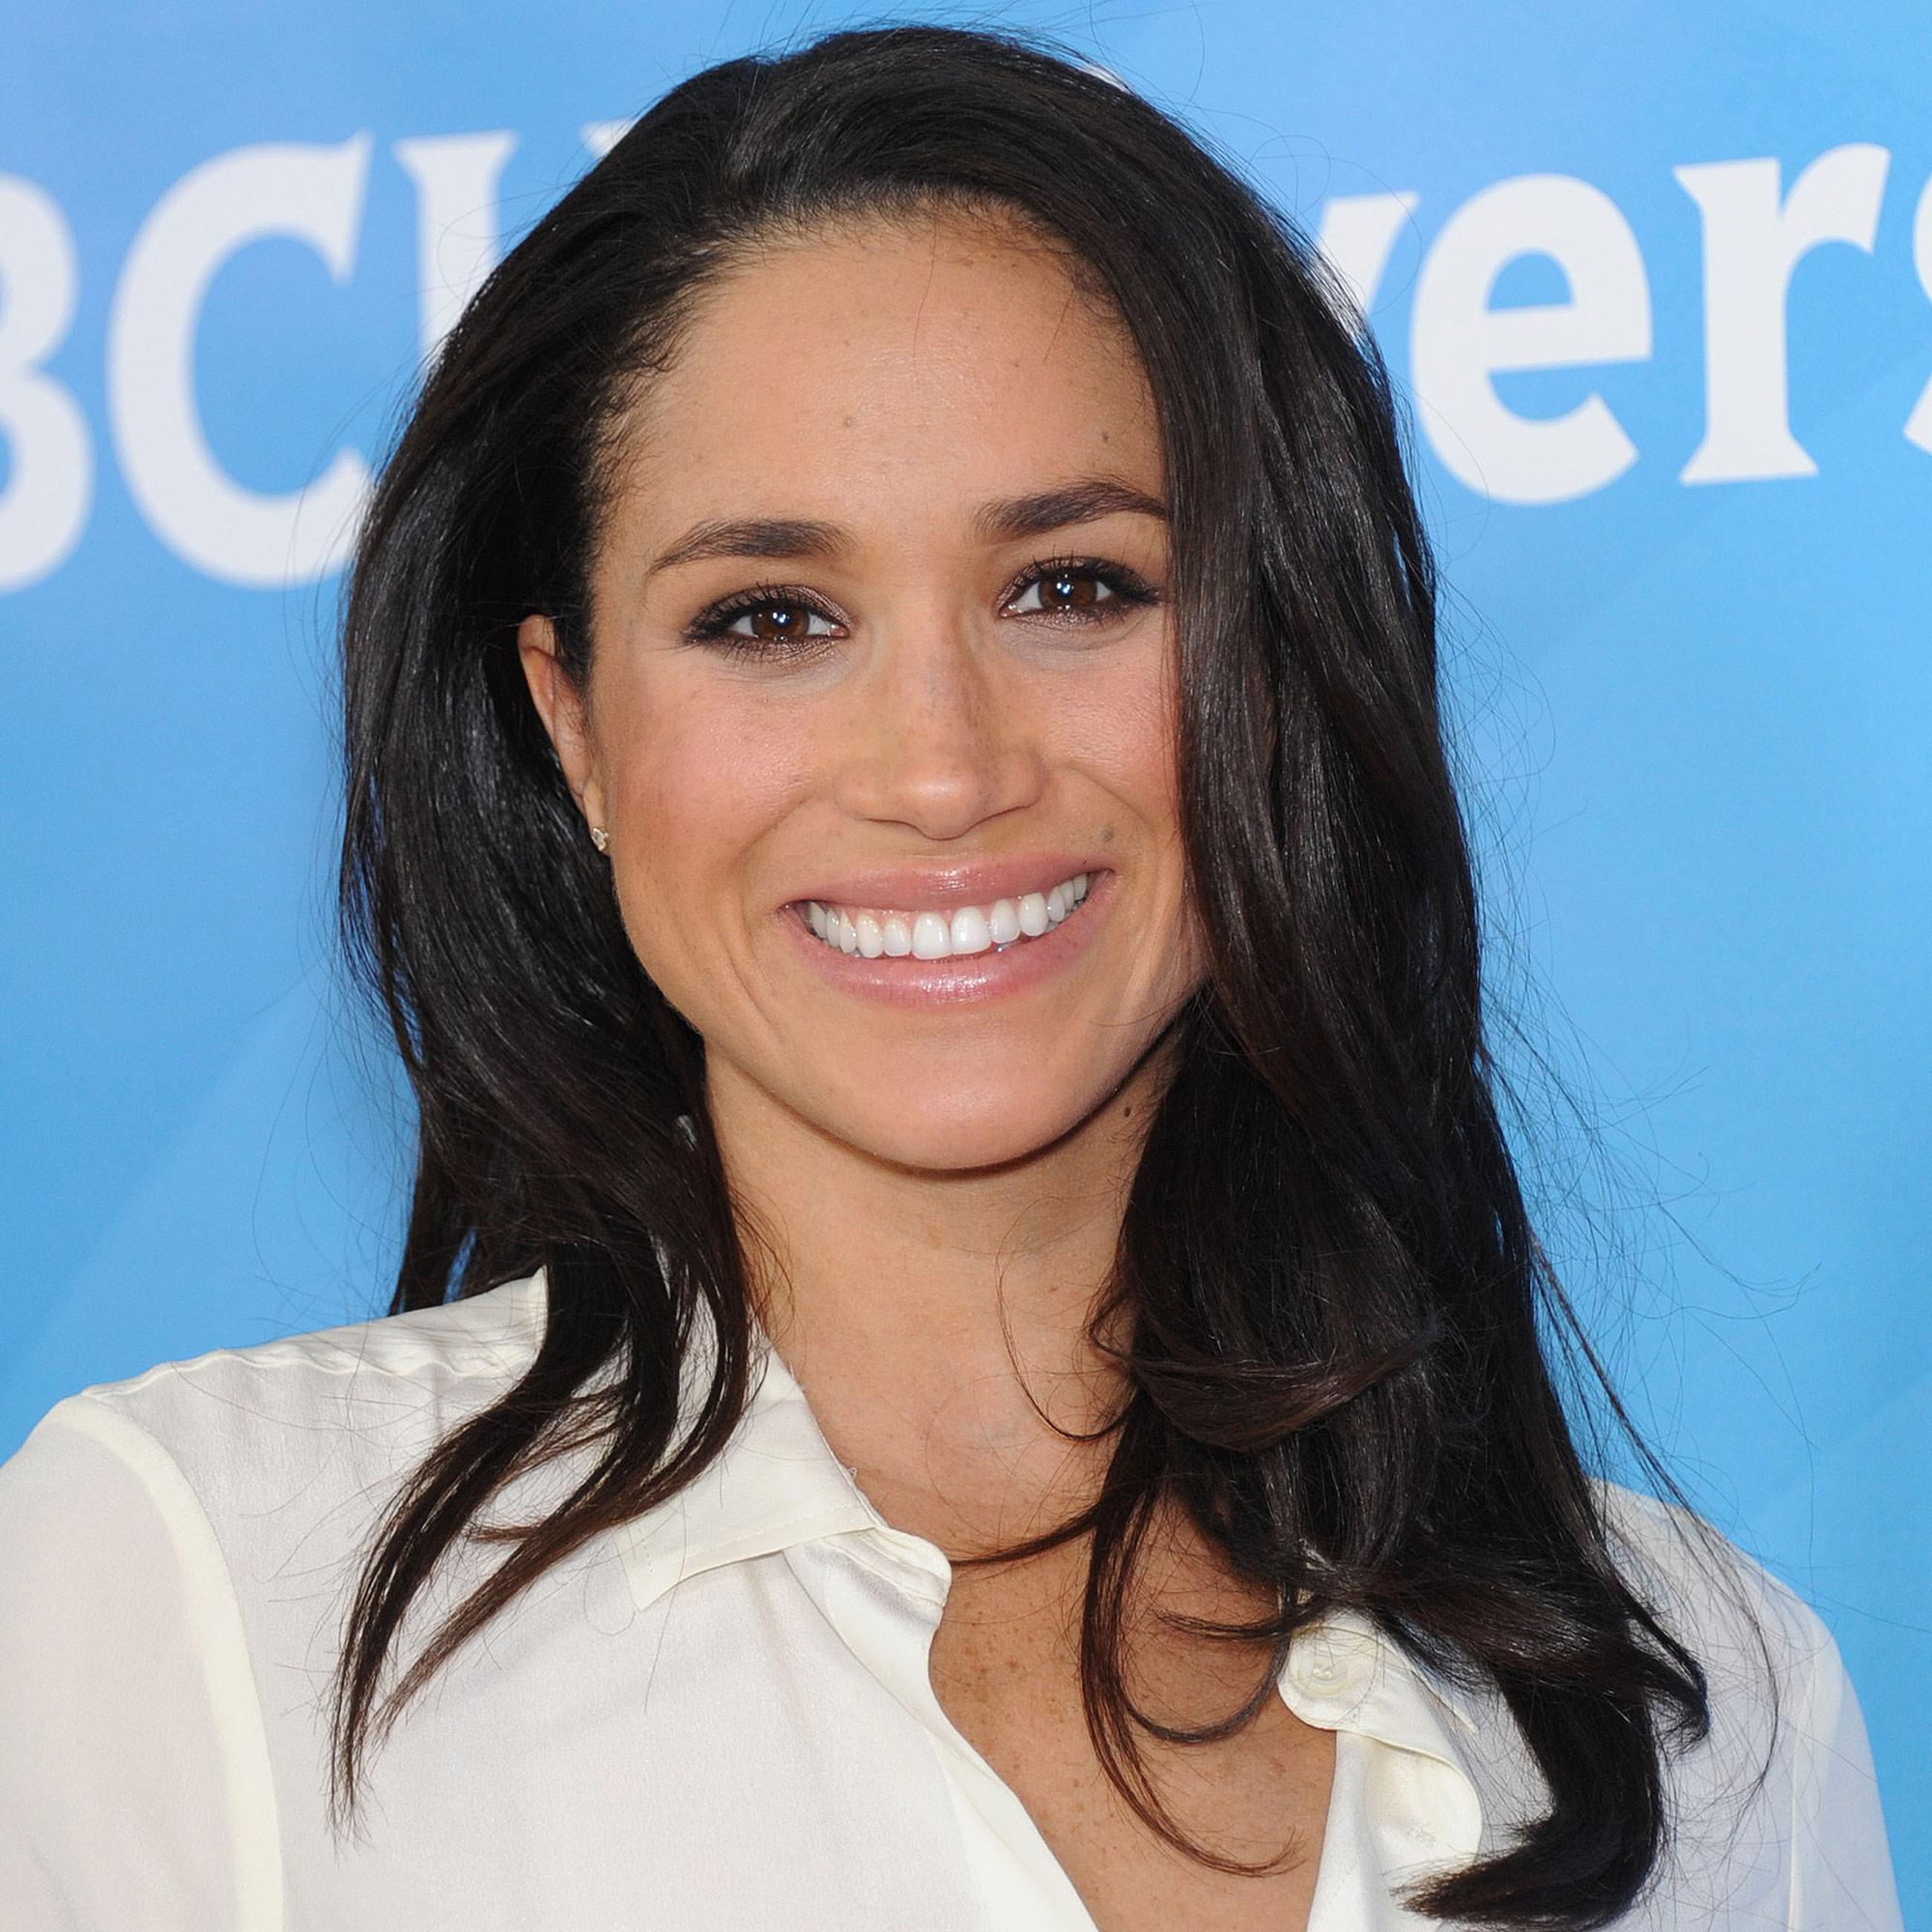 Biracial Actress Meghan Markle Recounts Her Family's History With Racism: 'It Still Haunts Me'